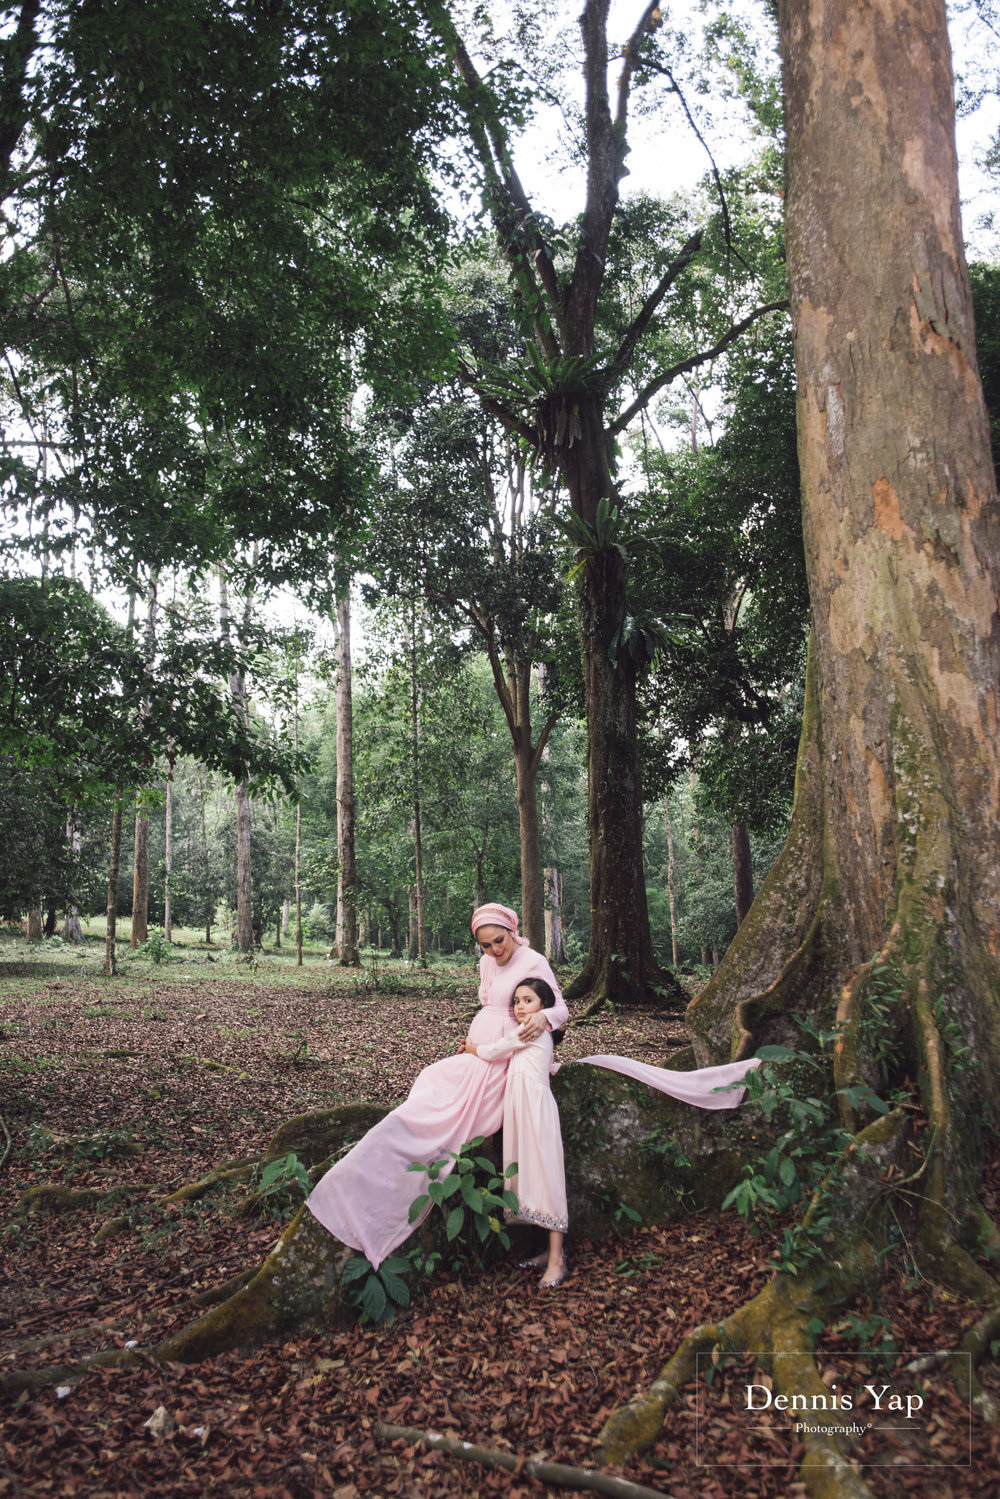 wulan maternity malay with daughter portrait dennis yap photography malaysia FRIM-7.jpg